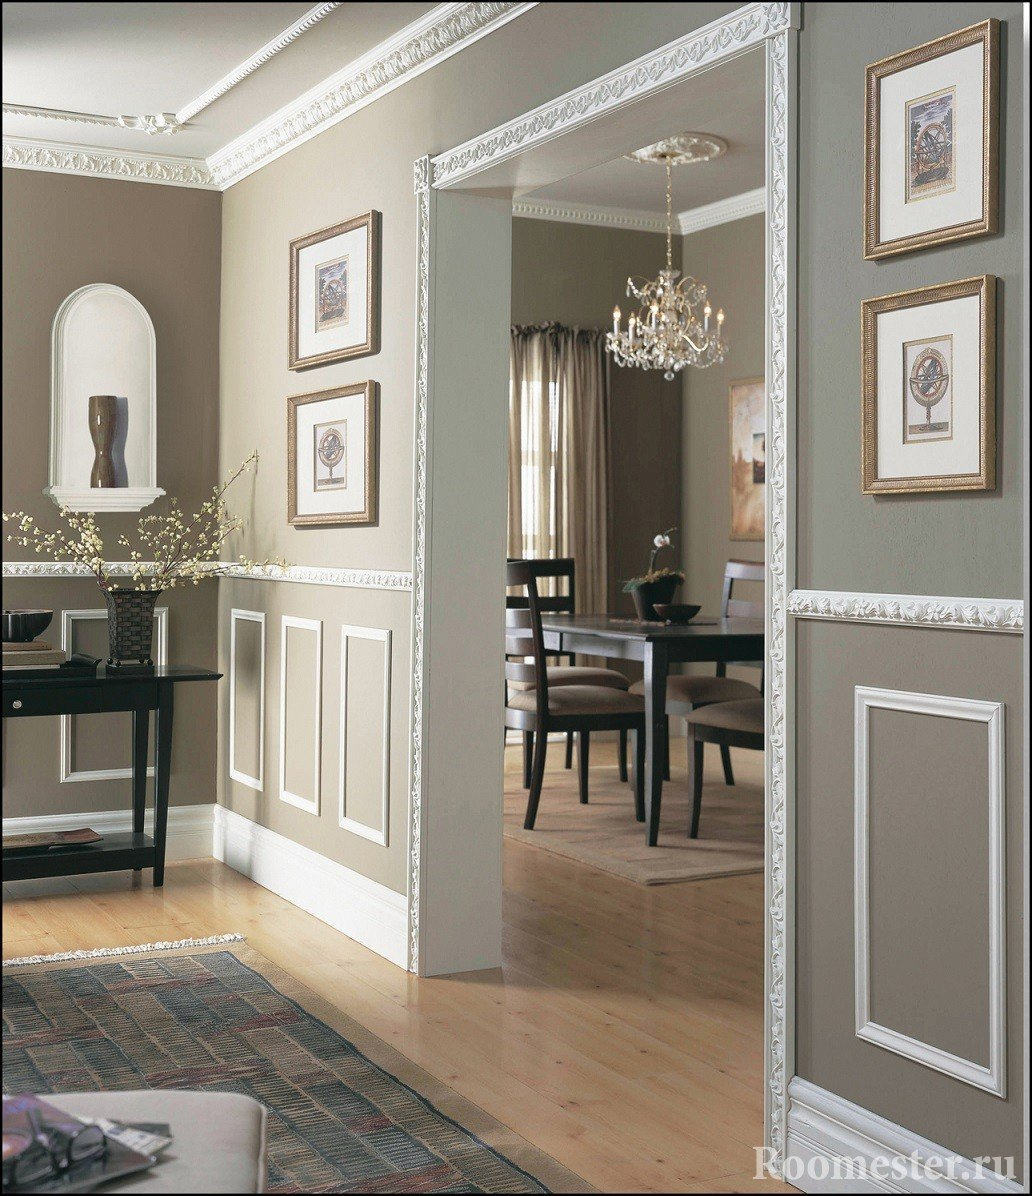 Examples of decorating walls and arch slats